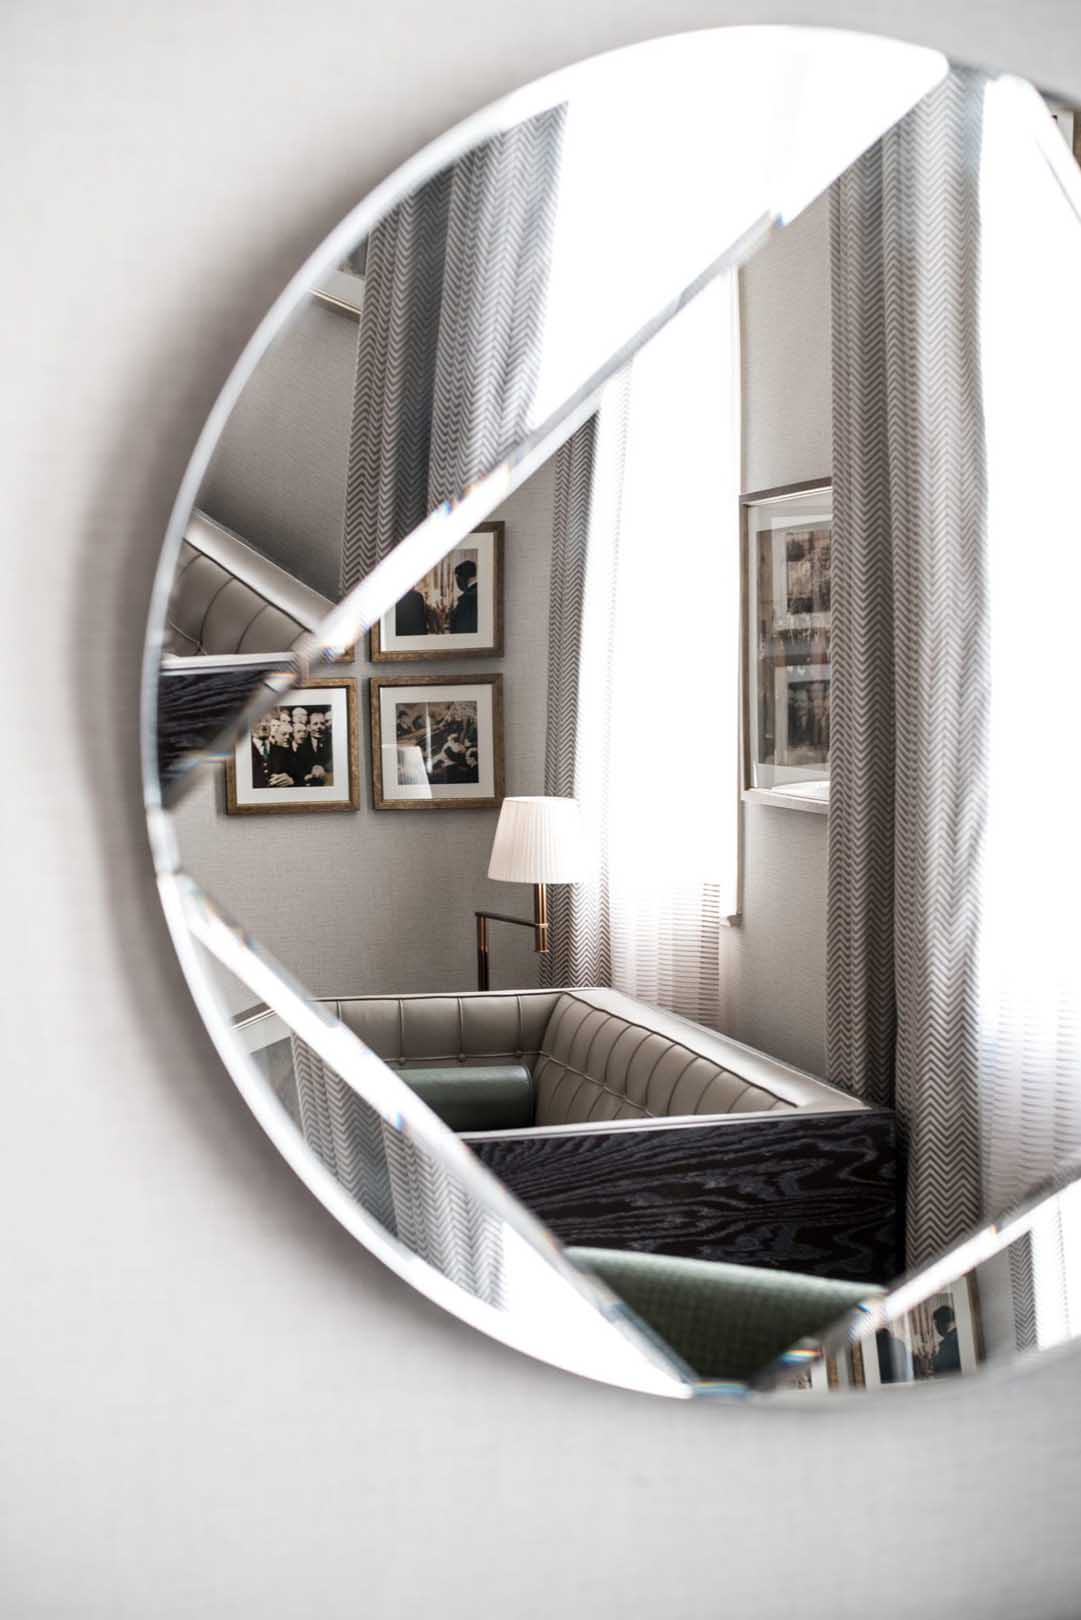 Circular mirror in a bedroom